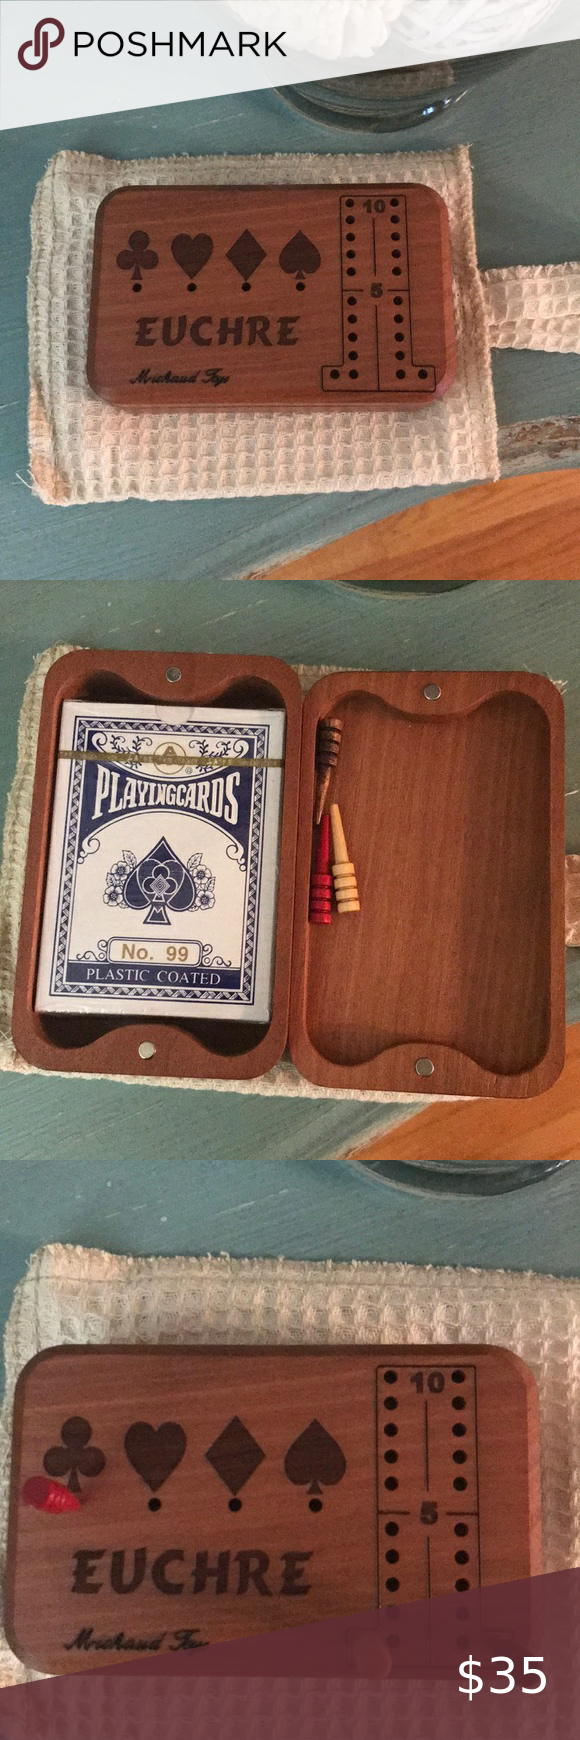 Euchre Card Game Wood Counter in 2020 Card games, Euchre